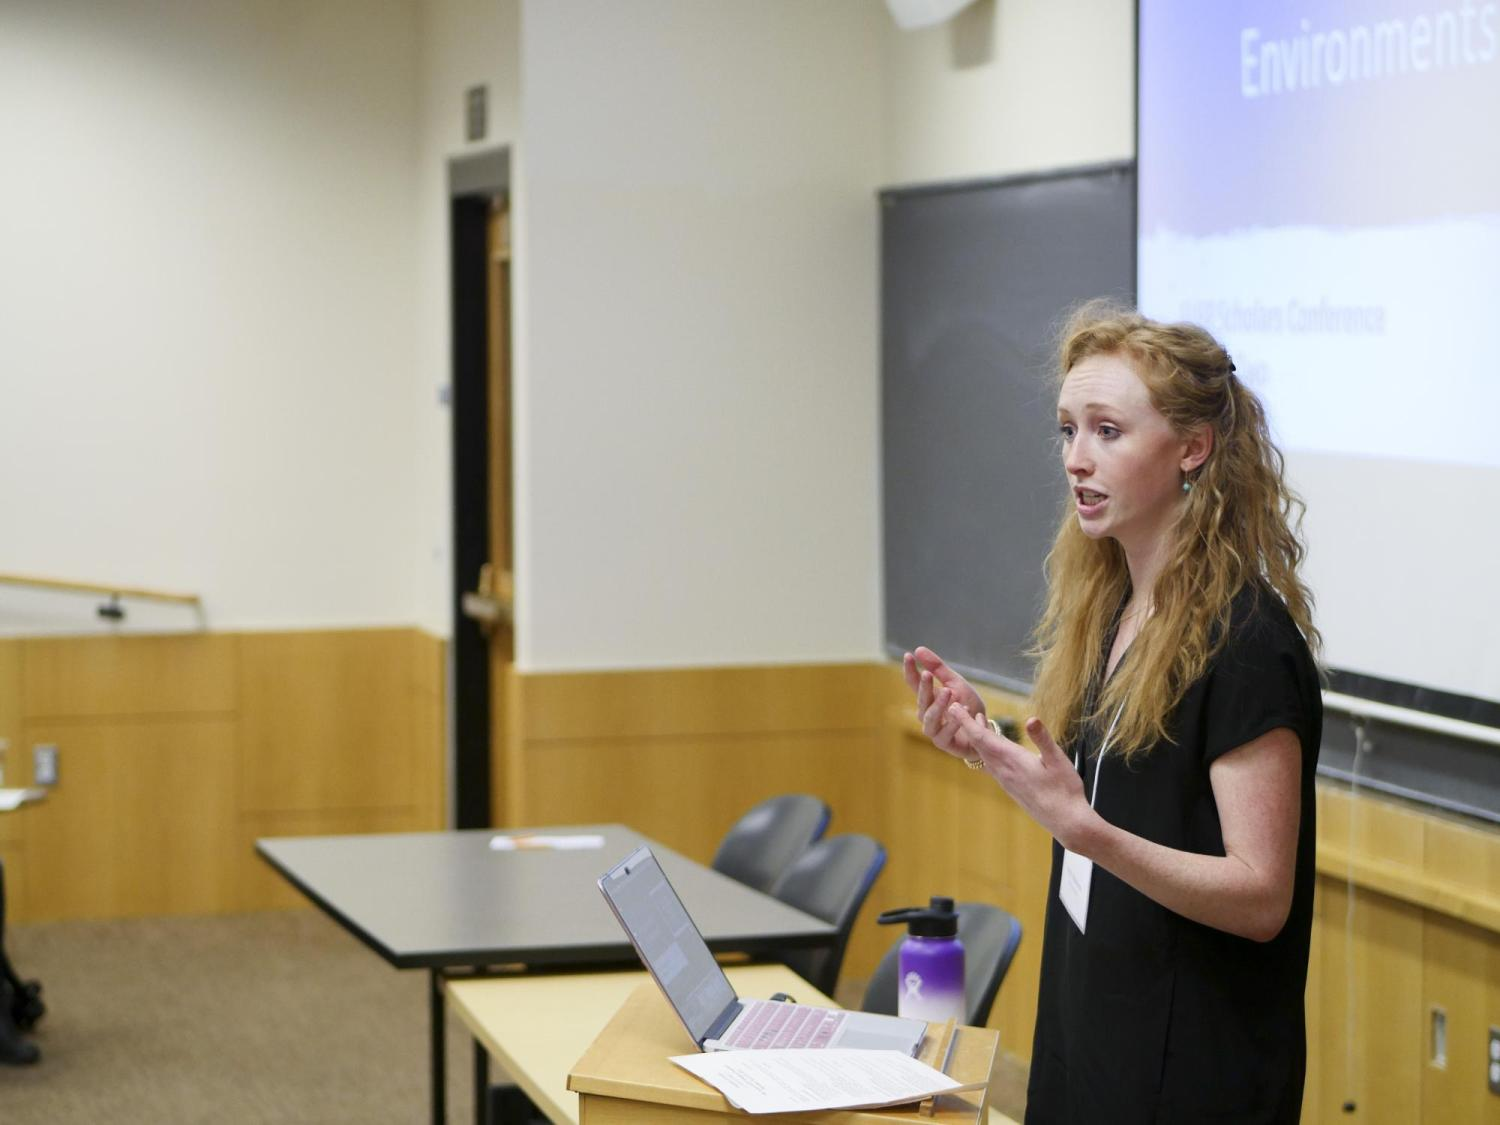 Scholar Kelly Dinneen presents at the annual Scholars Conference